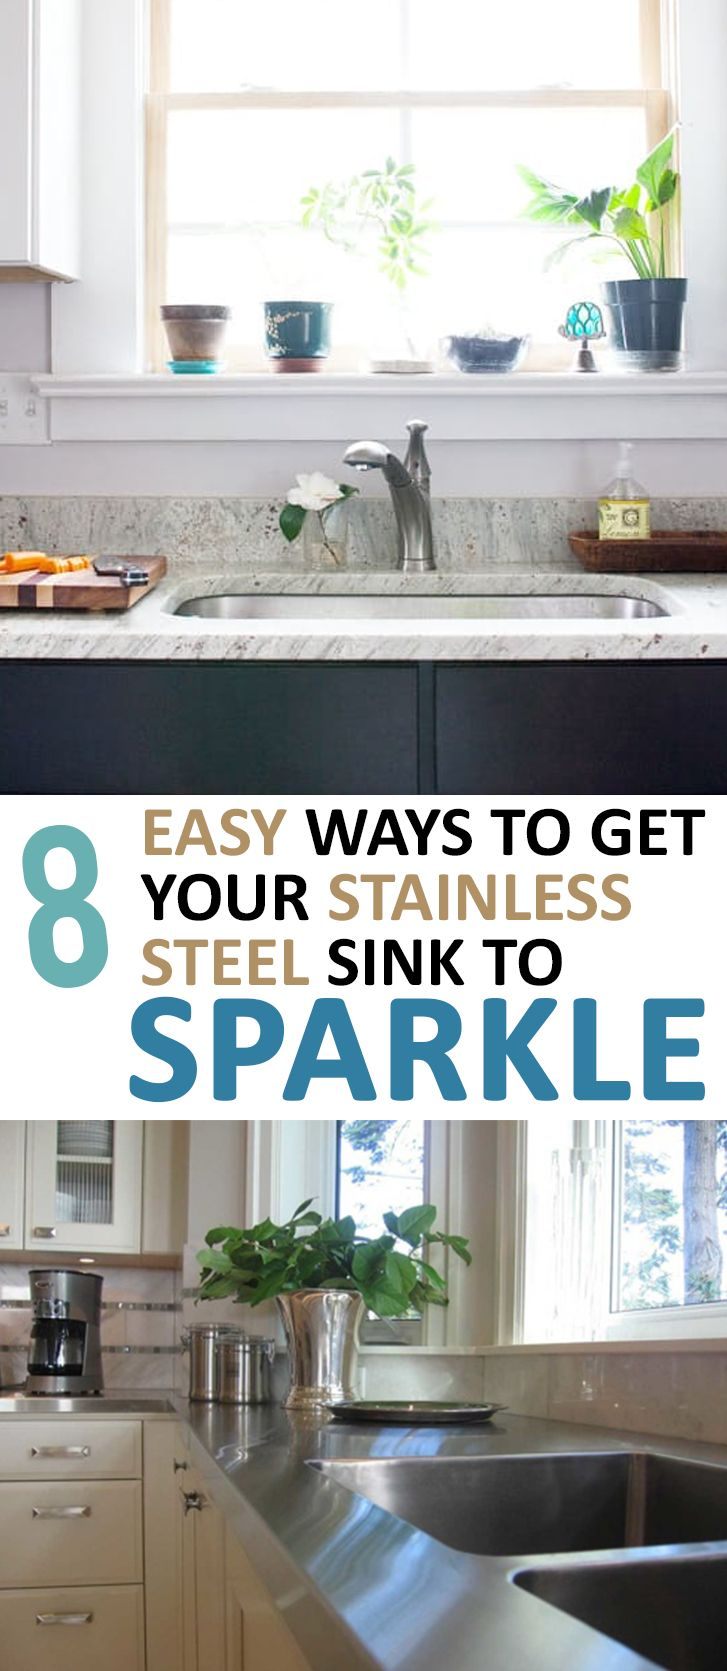 8-easy-ways-to-get-your-stainless-steel-sink-to-sparkle